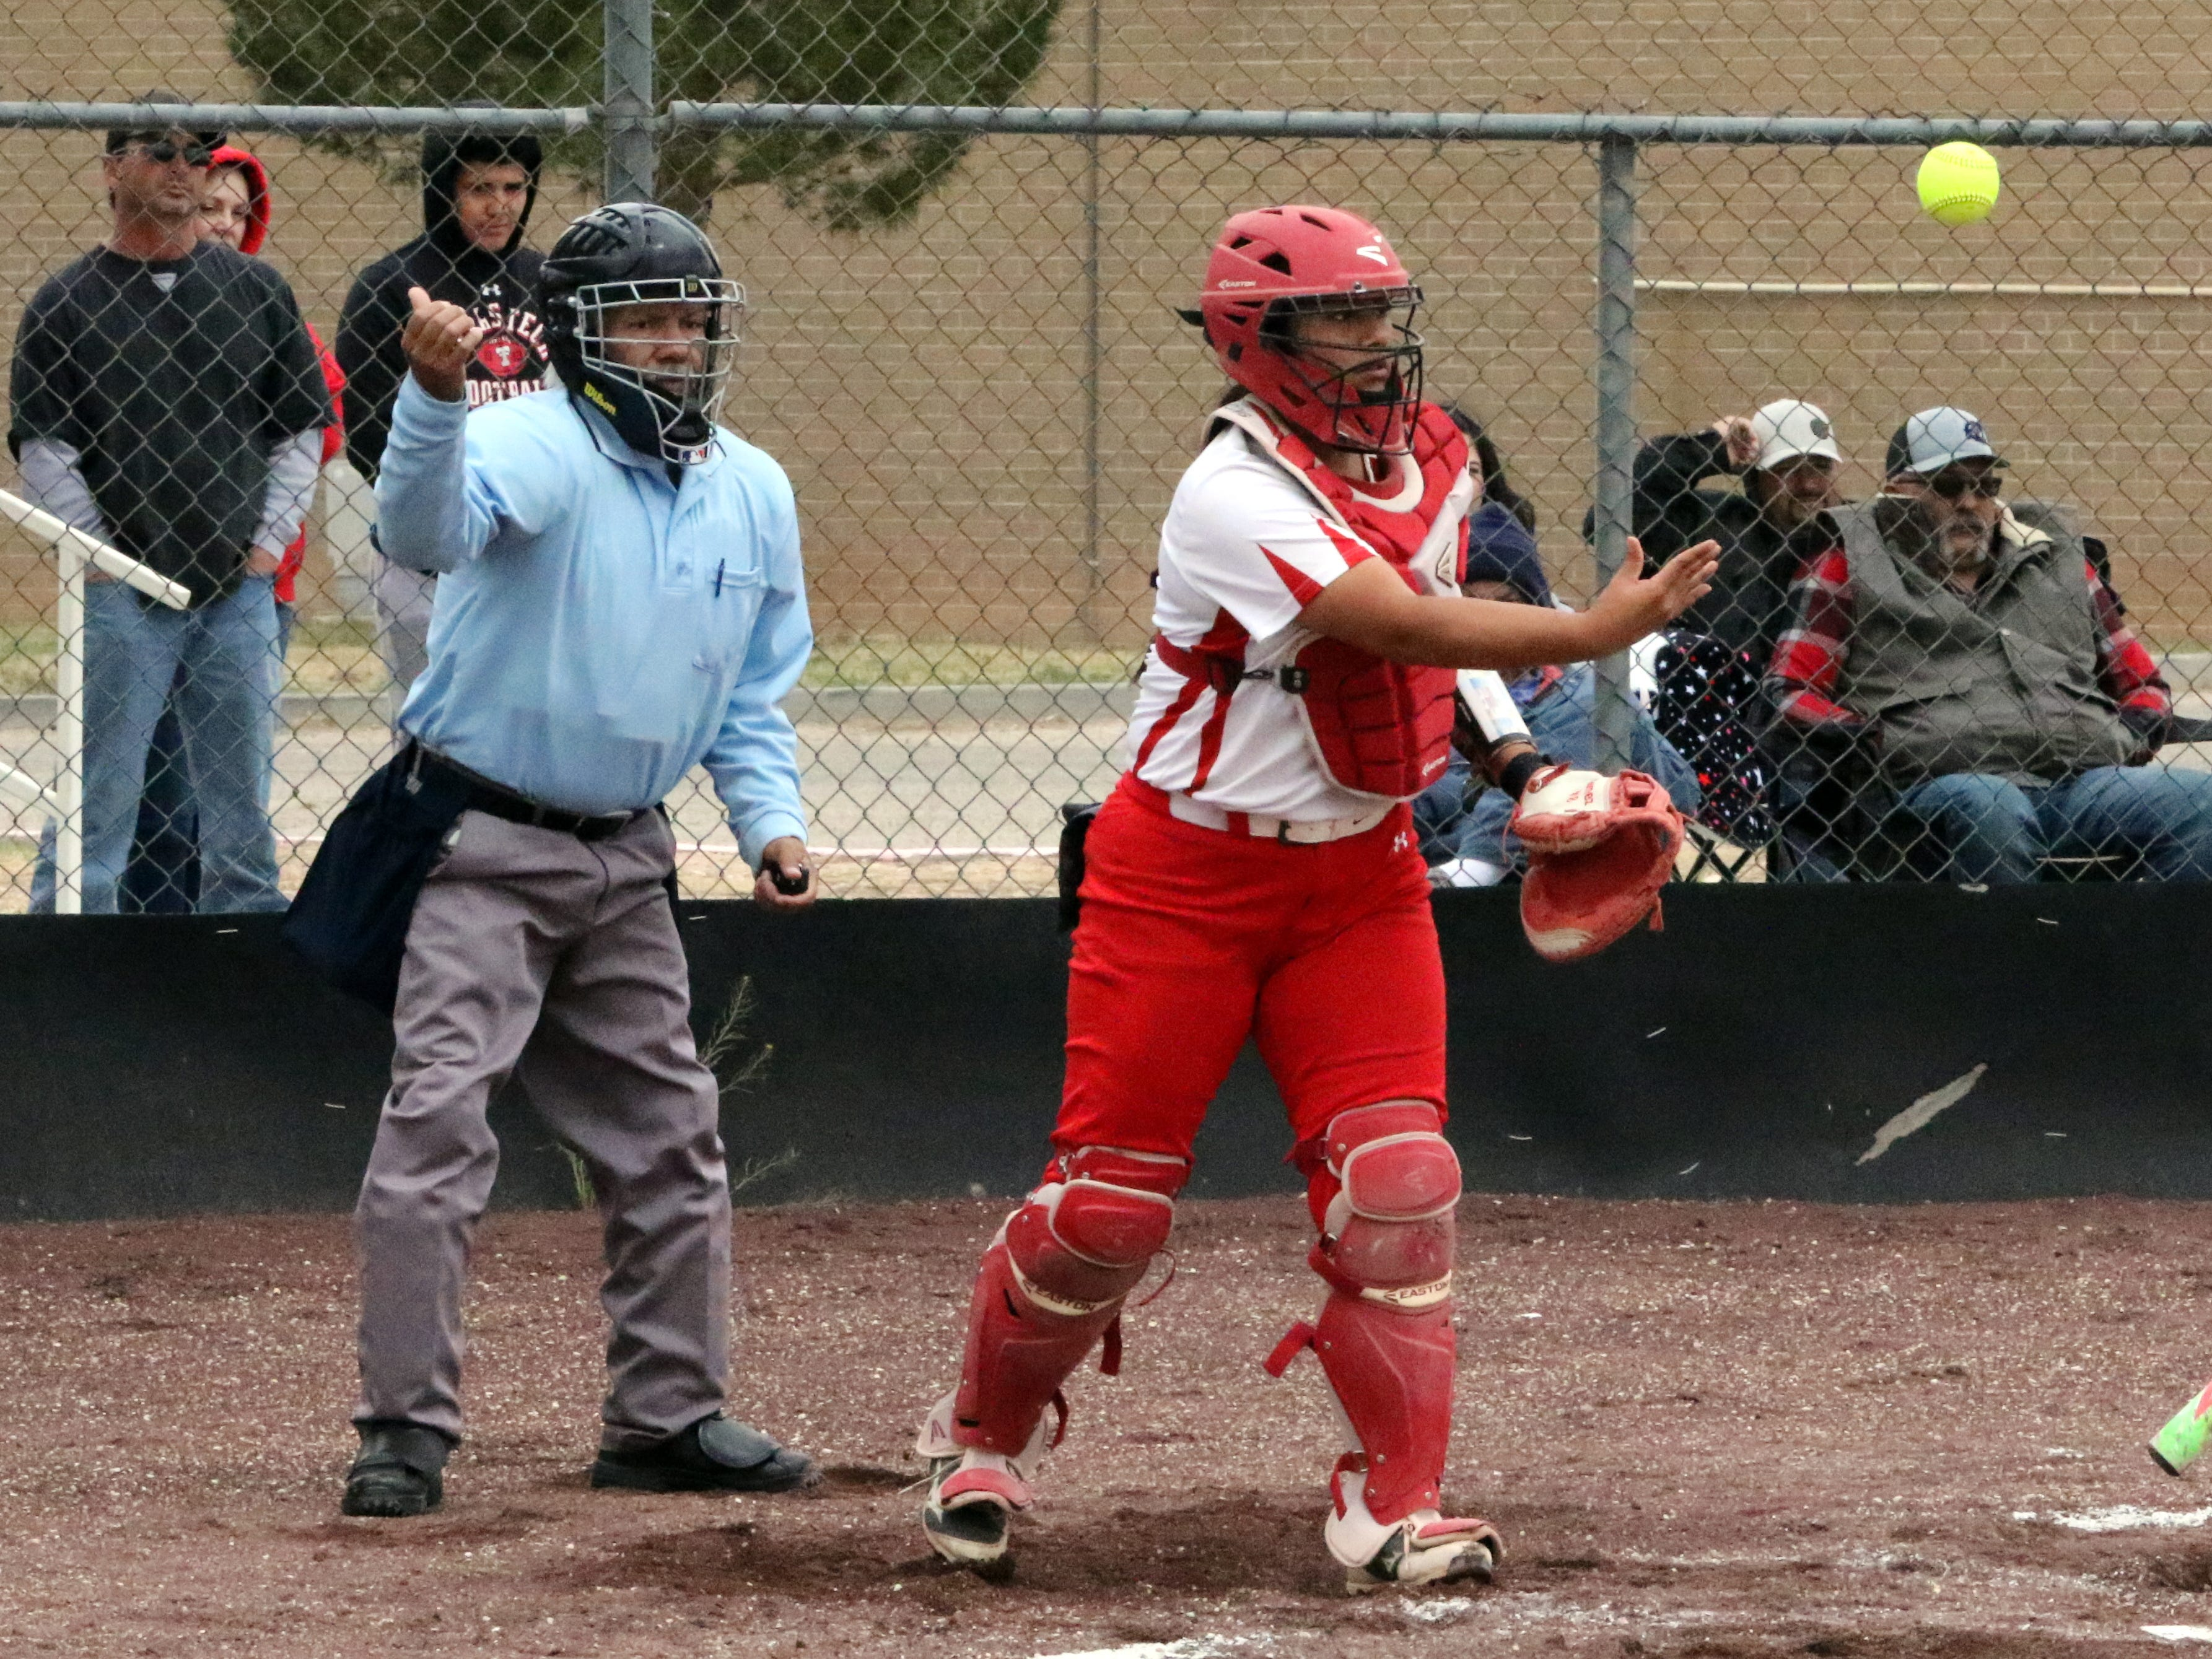 Andrica Gomez tosses the ball after Loving ended the third inning of Game 1 with the bases loaded.